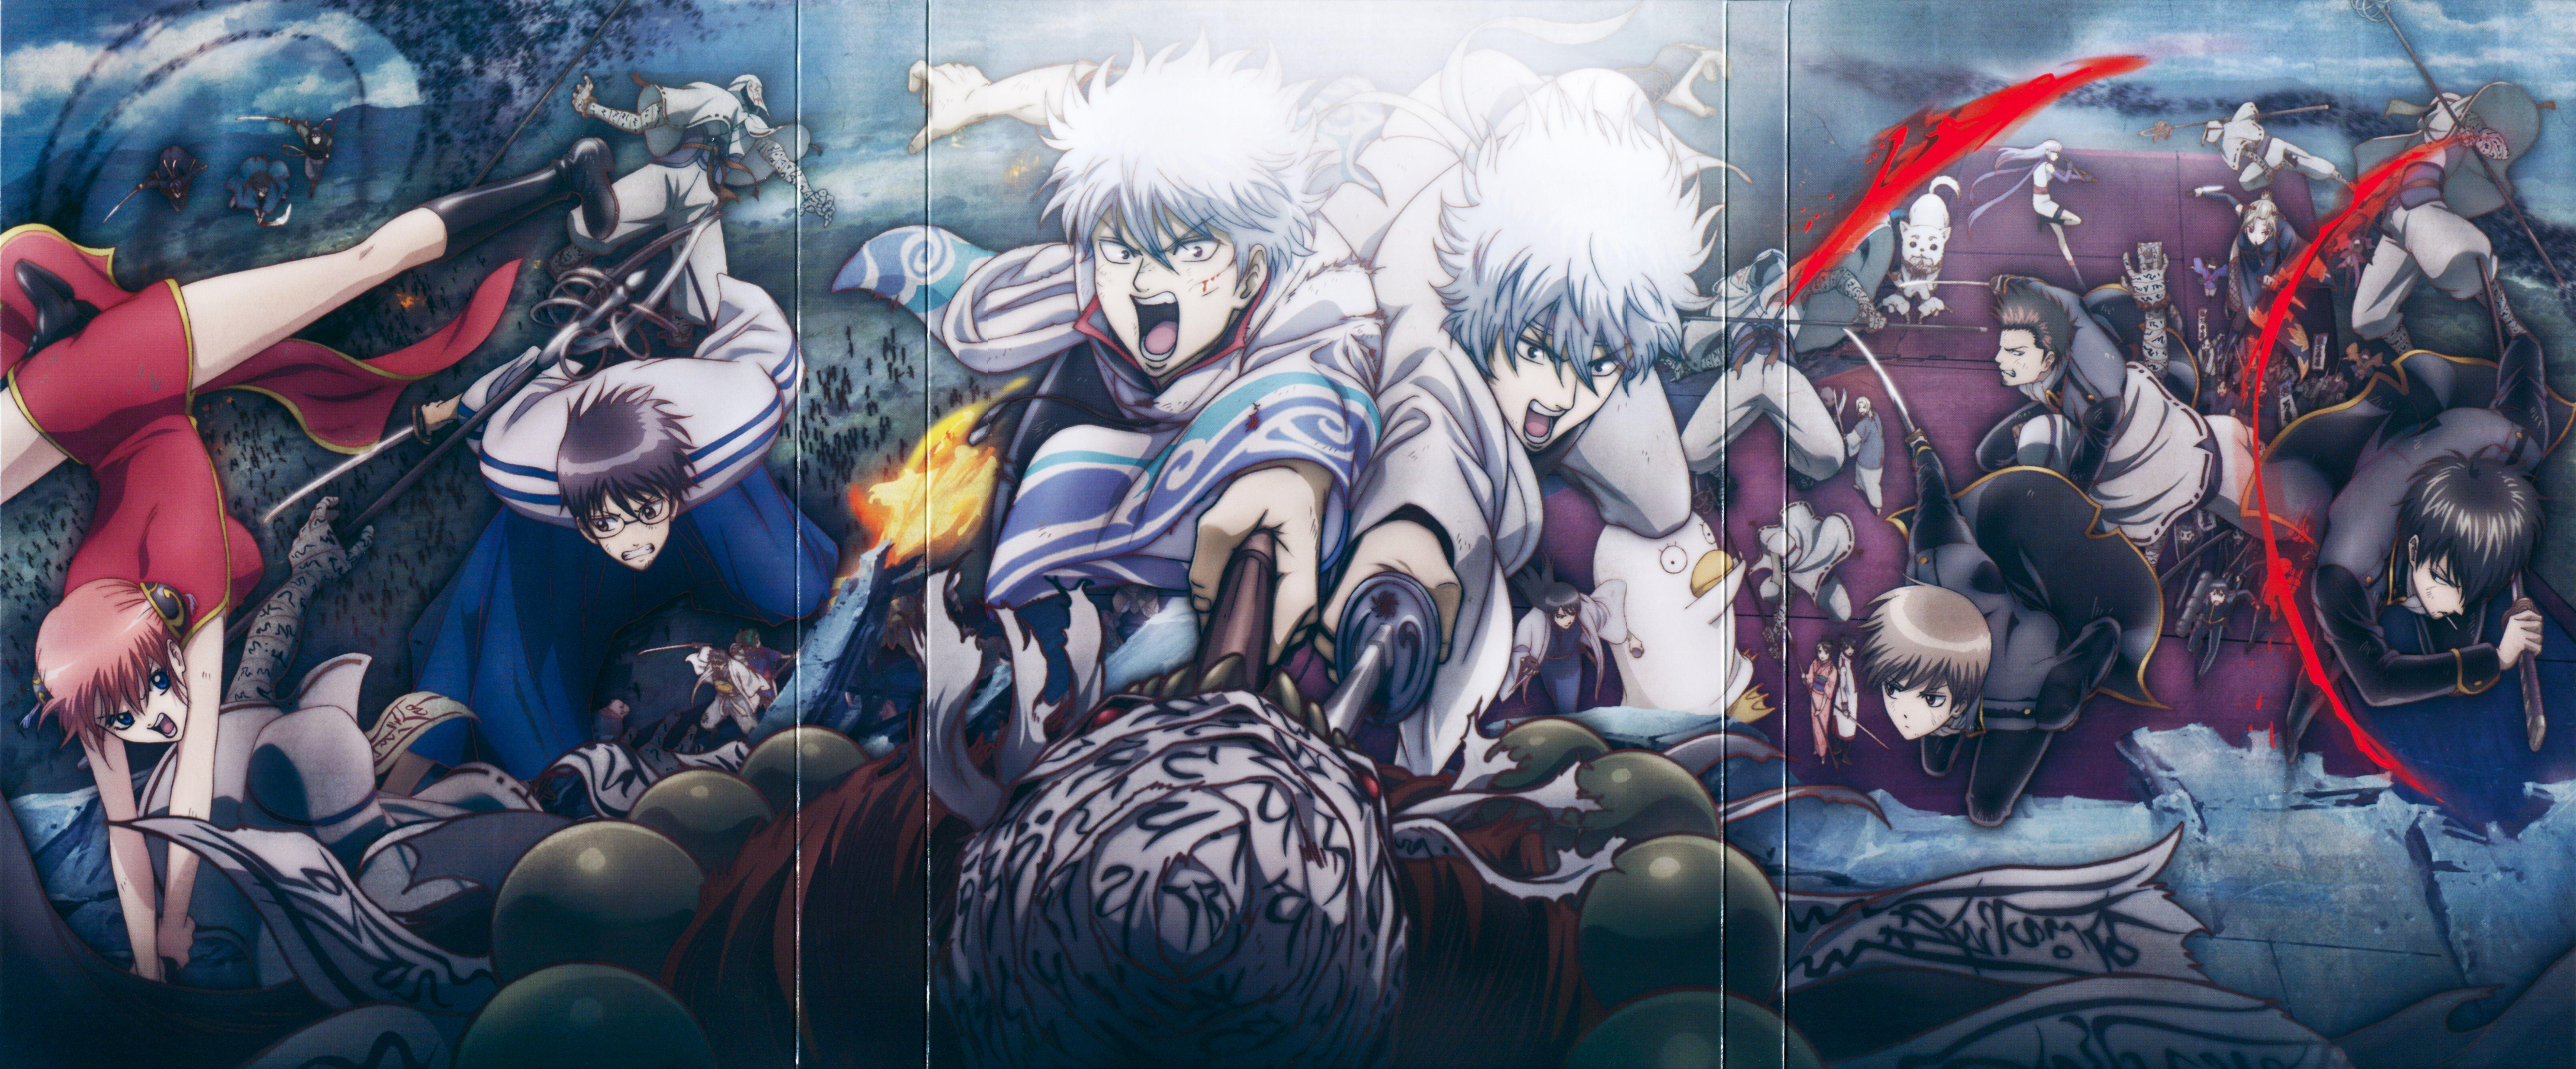 Gintama Wallpapers Hd For Free Wallpapers